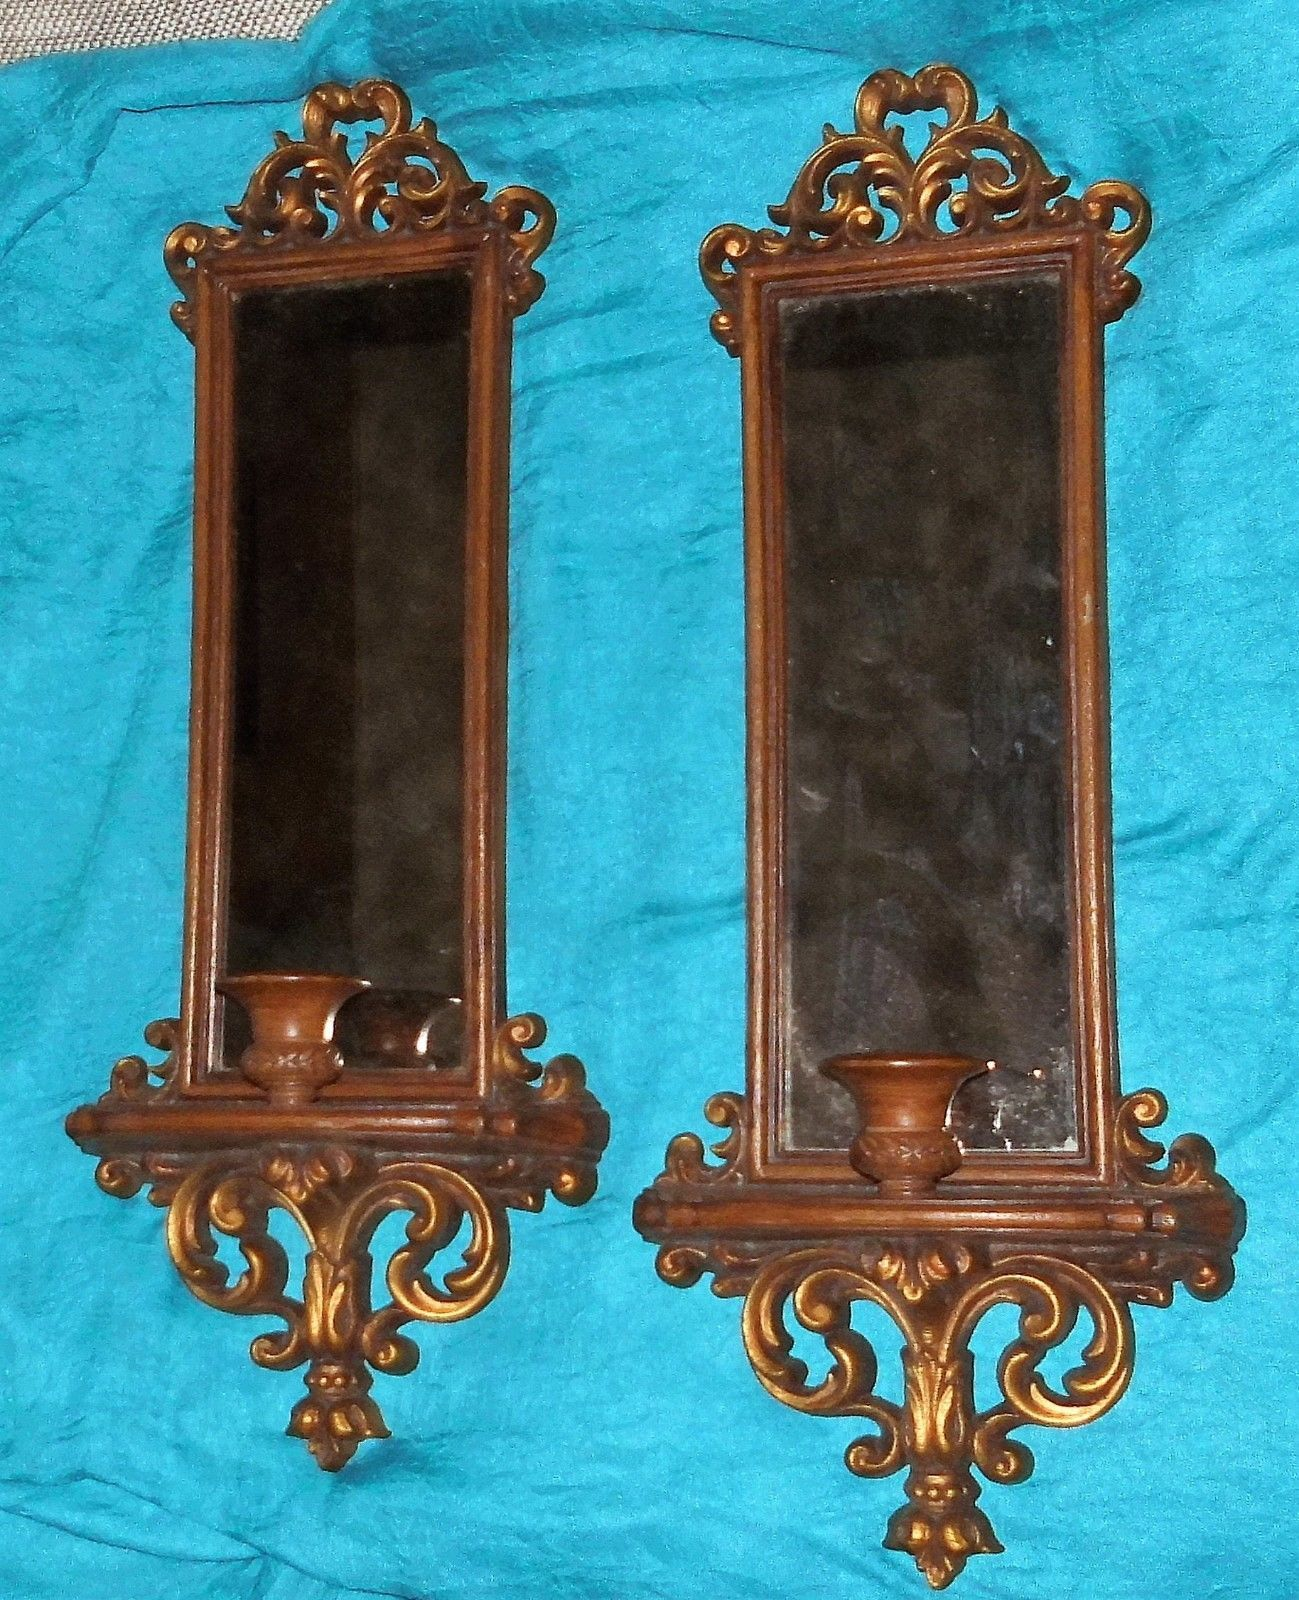 Stunning Vintage Burwood Wall Mirror Sconces Candleholders Fy Home Interior L K Sconces Home Interiors And Gifts Mirror Wall